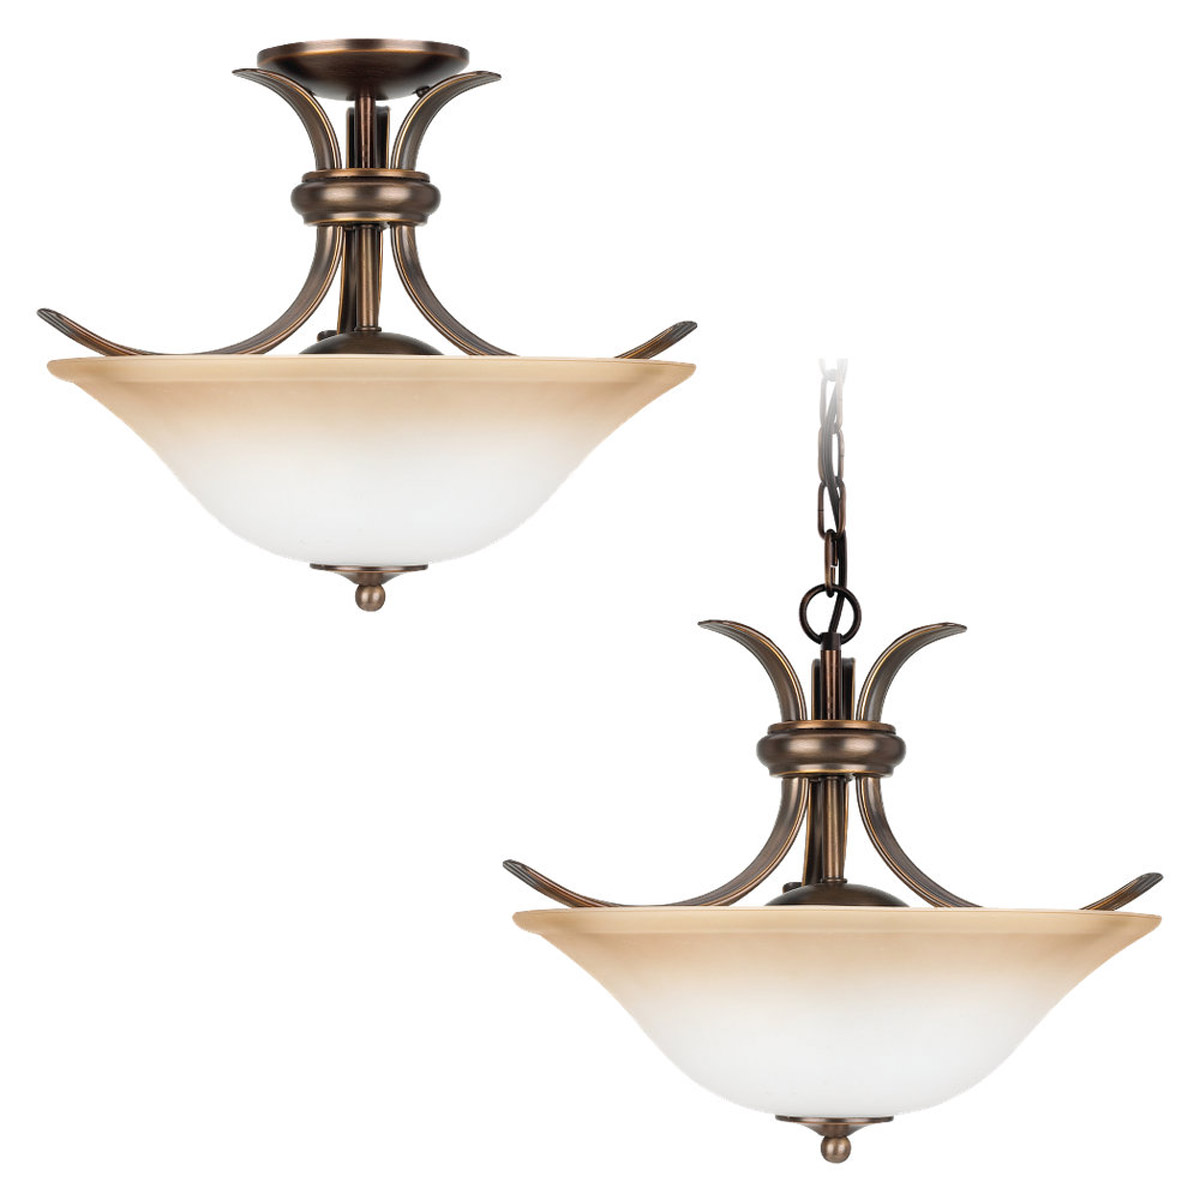 Sea Gull Lighting Rialto 2 Light Semi-Flush Mount in Russet Bronze 75360-829